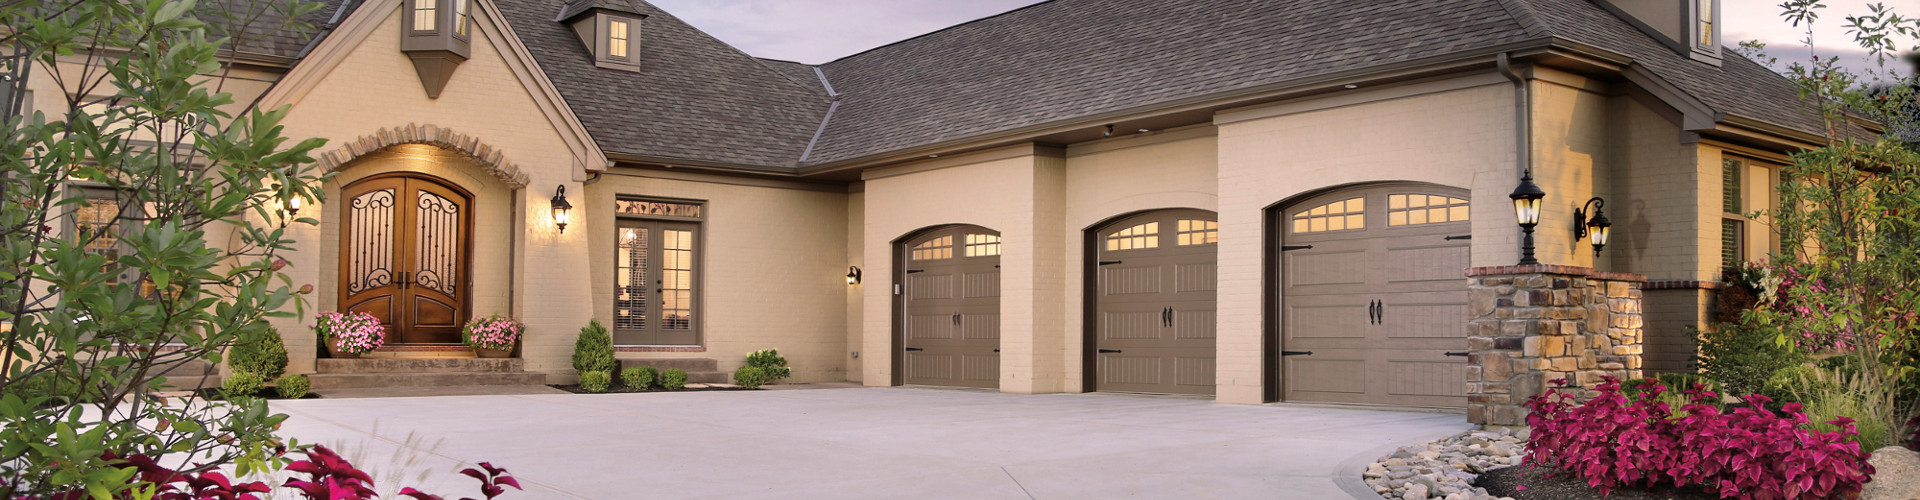 Superbe Custom Garage Doors In Salt Lake City